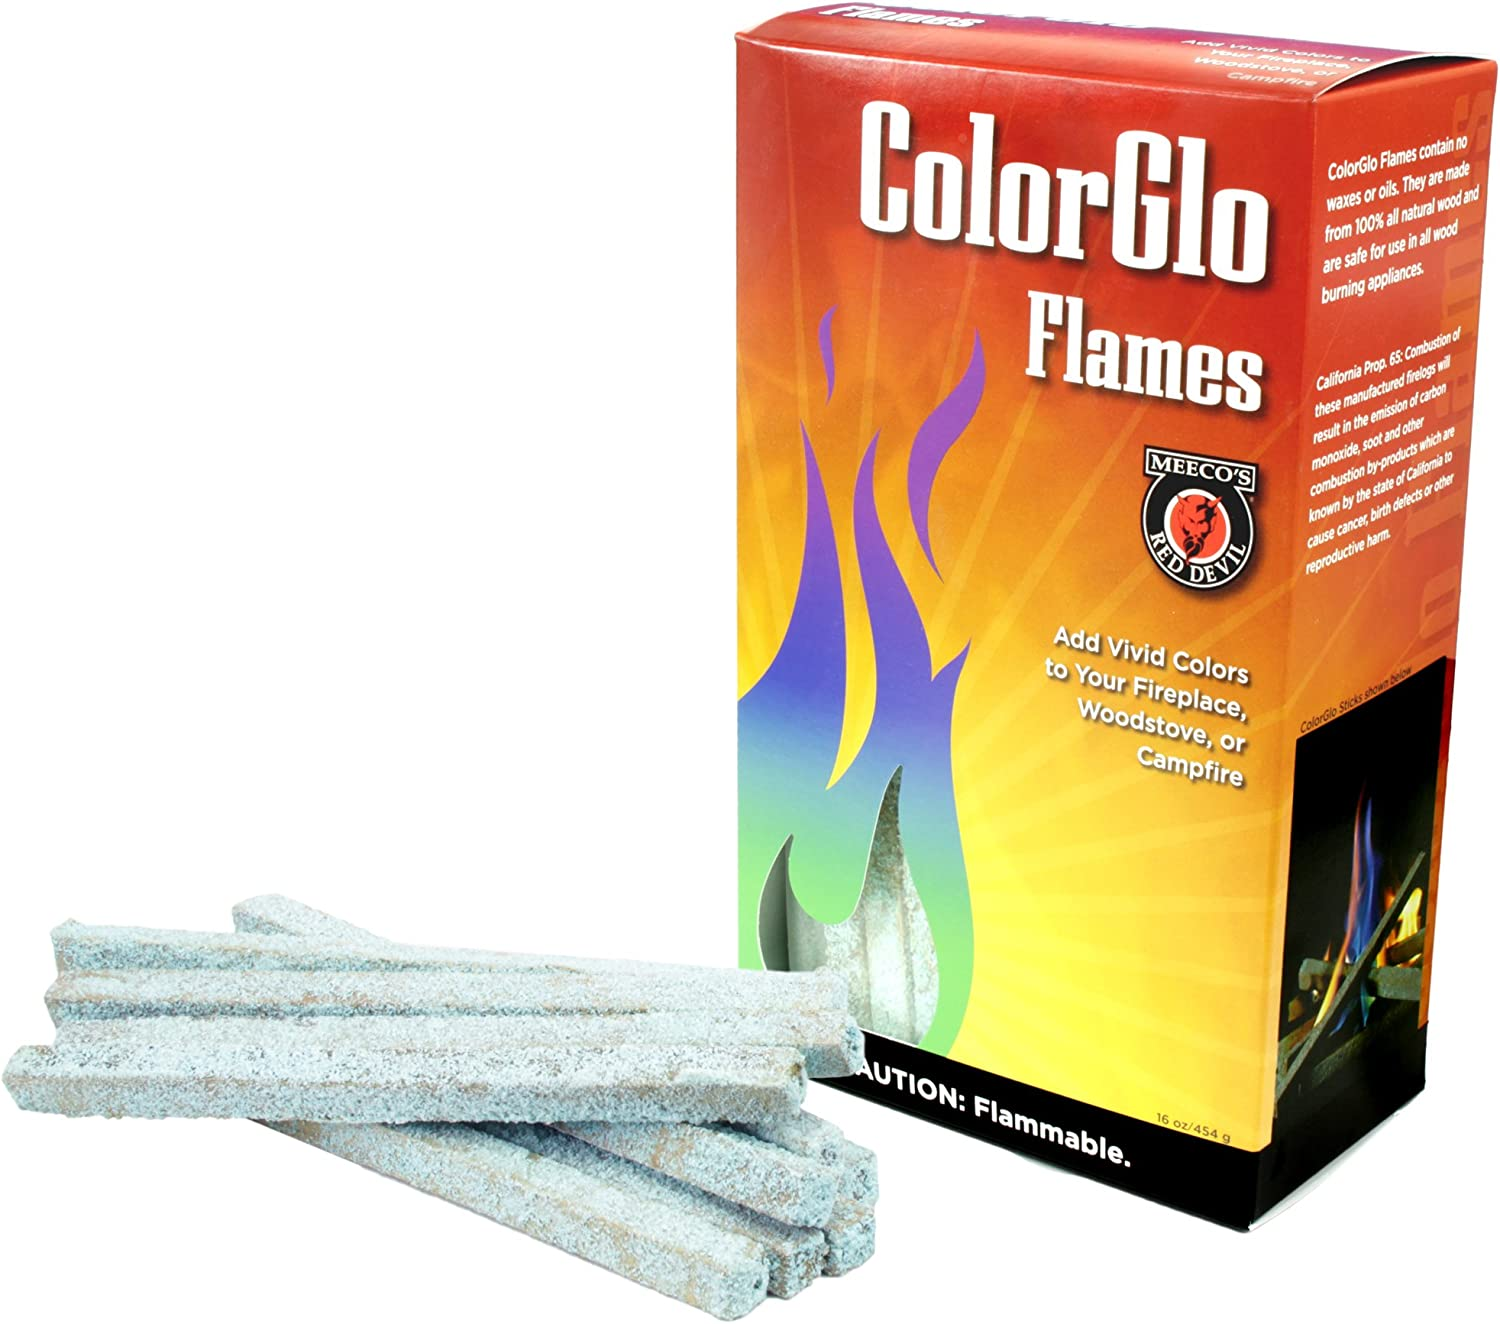 MEECOS RED DEVIL 88310 ColorGlo Flame Sticks MEECO MFG CO INC